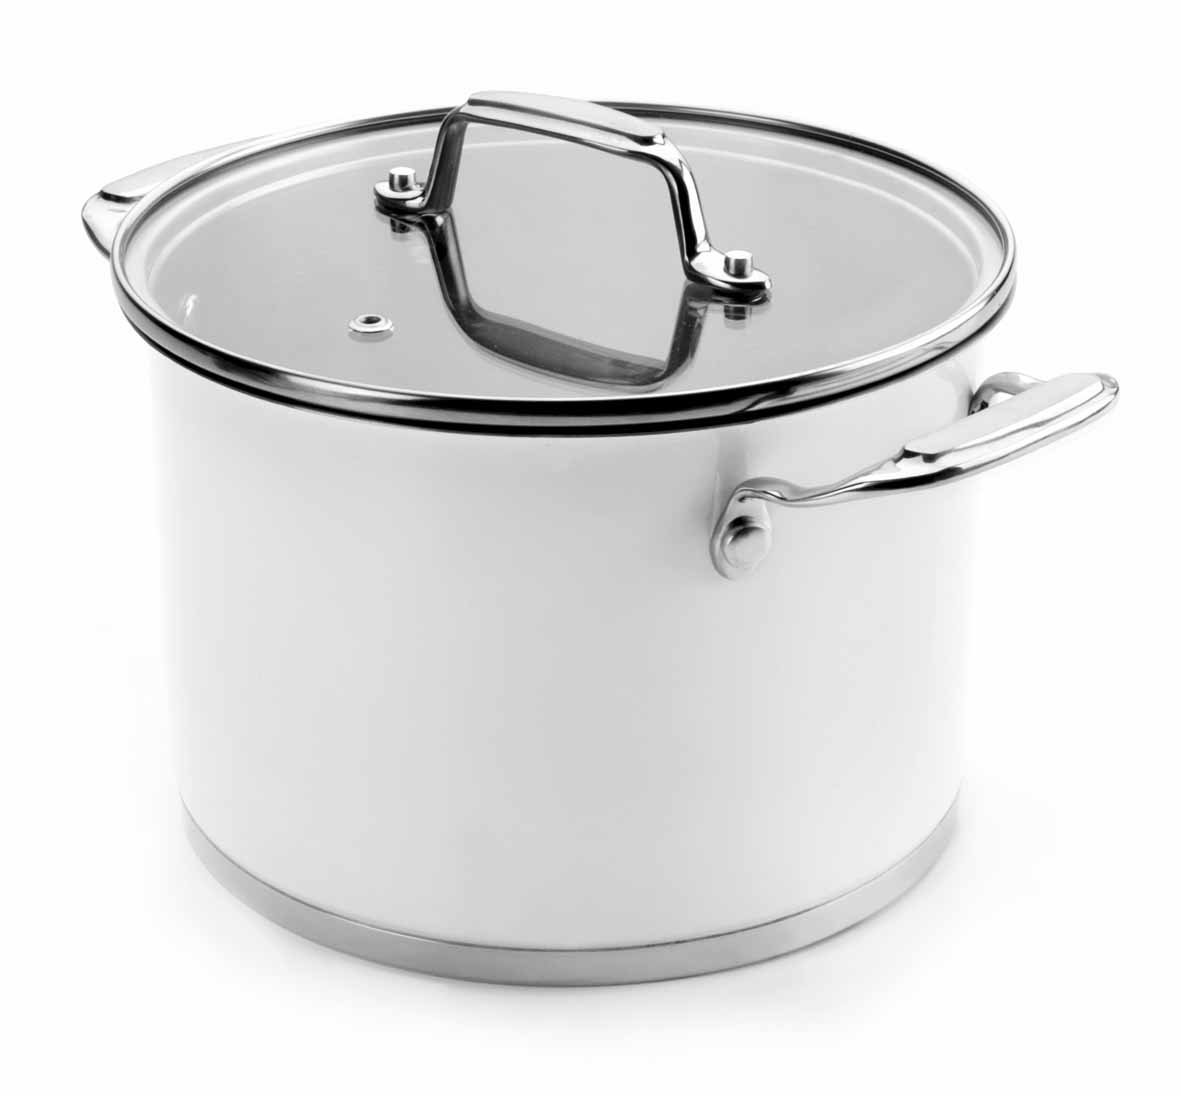 Lacor Stockpot with Glass Lid White 16 cm Stainless Steel